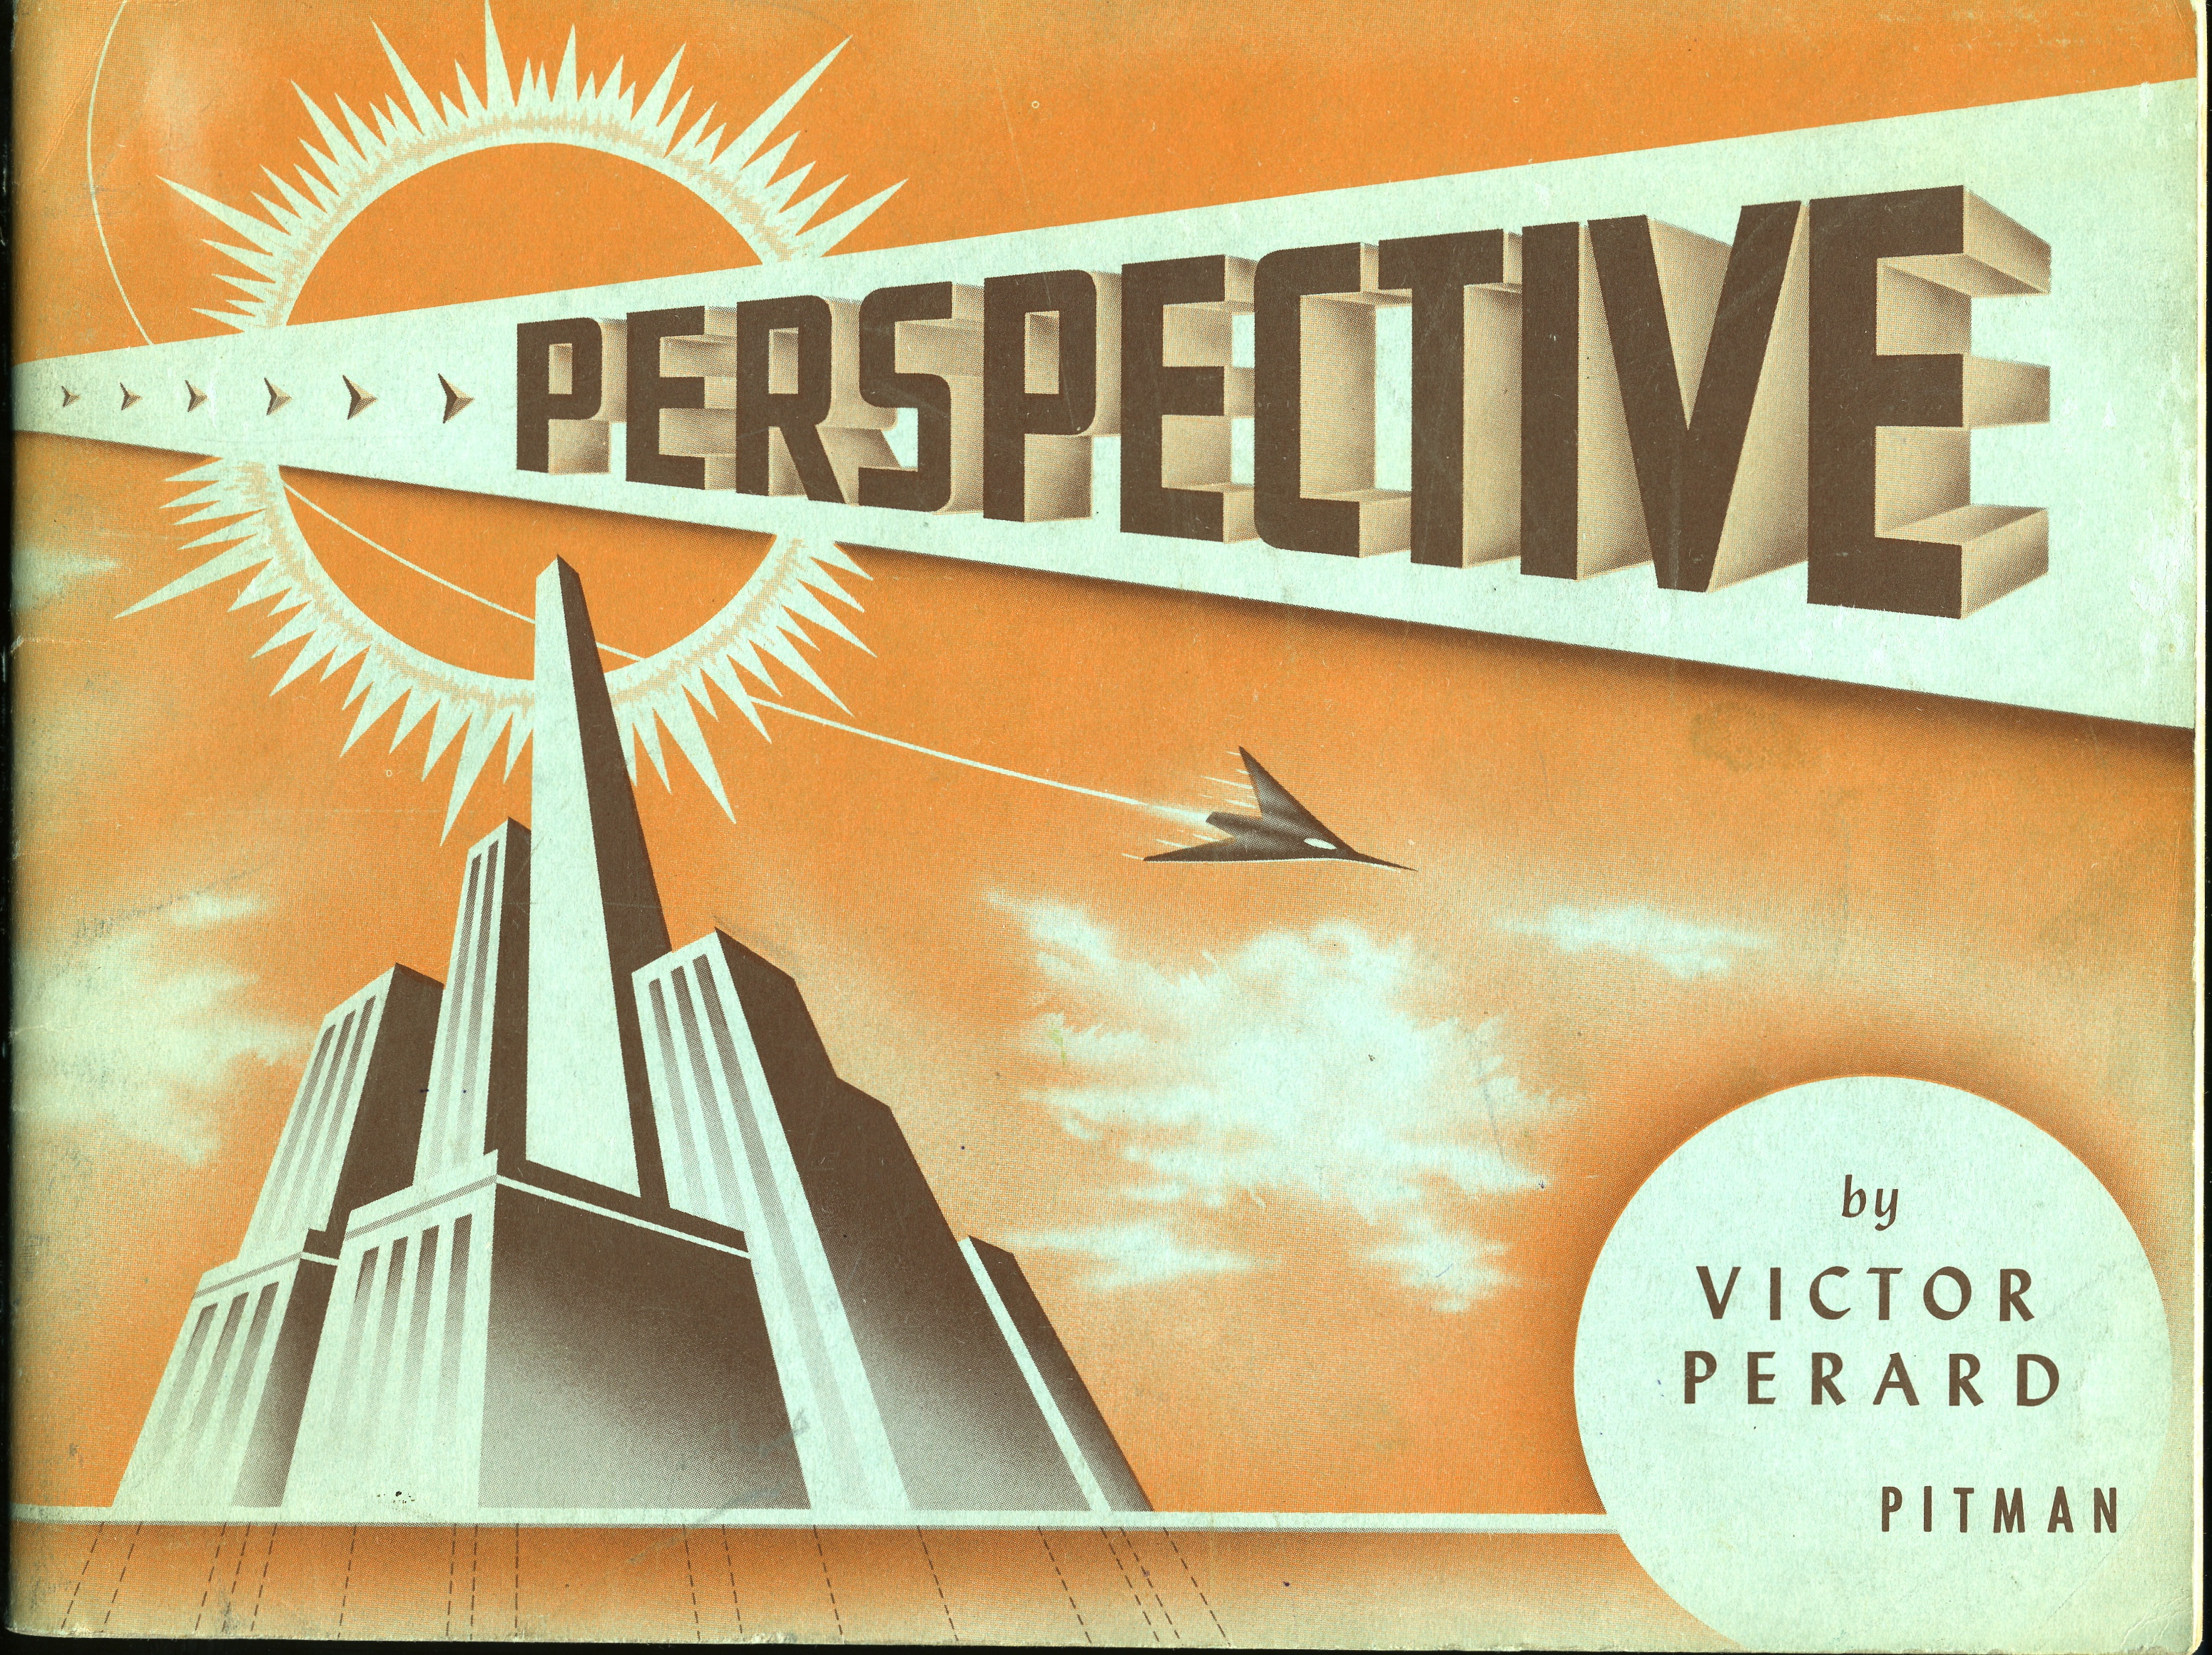 Perspective by Victor perard